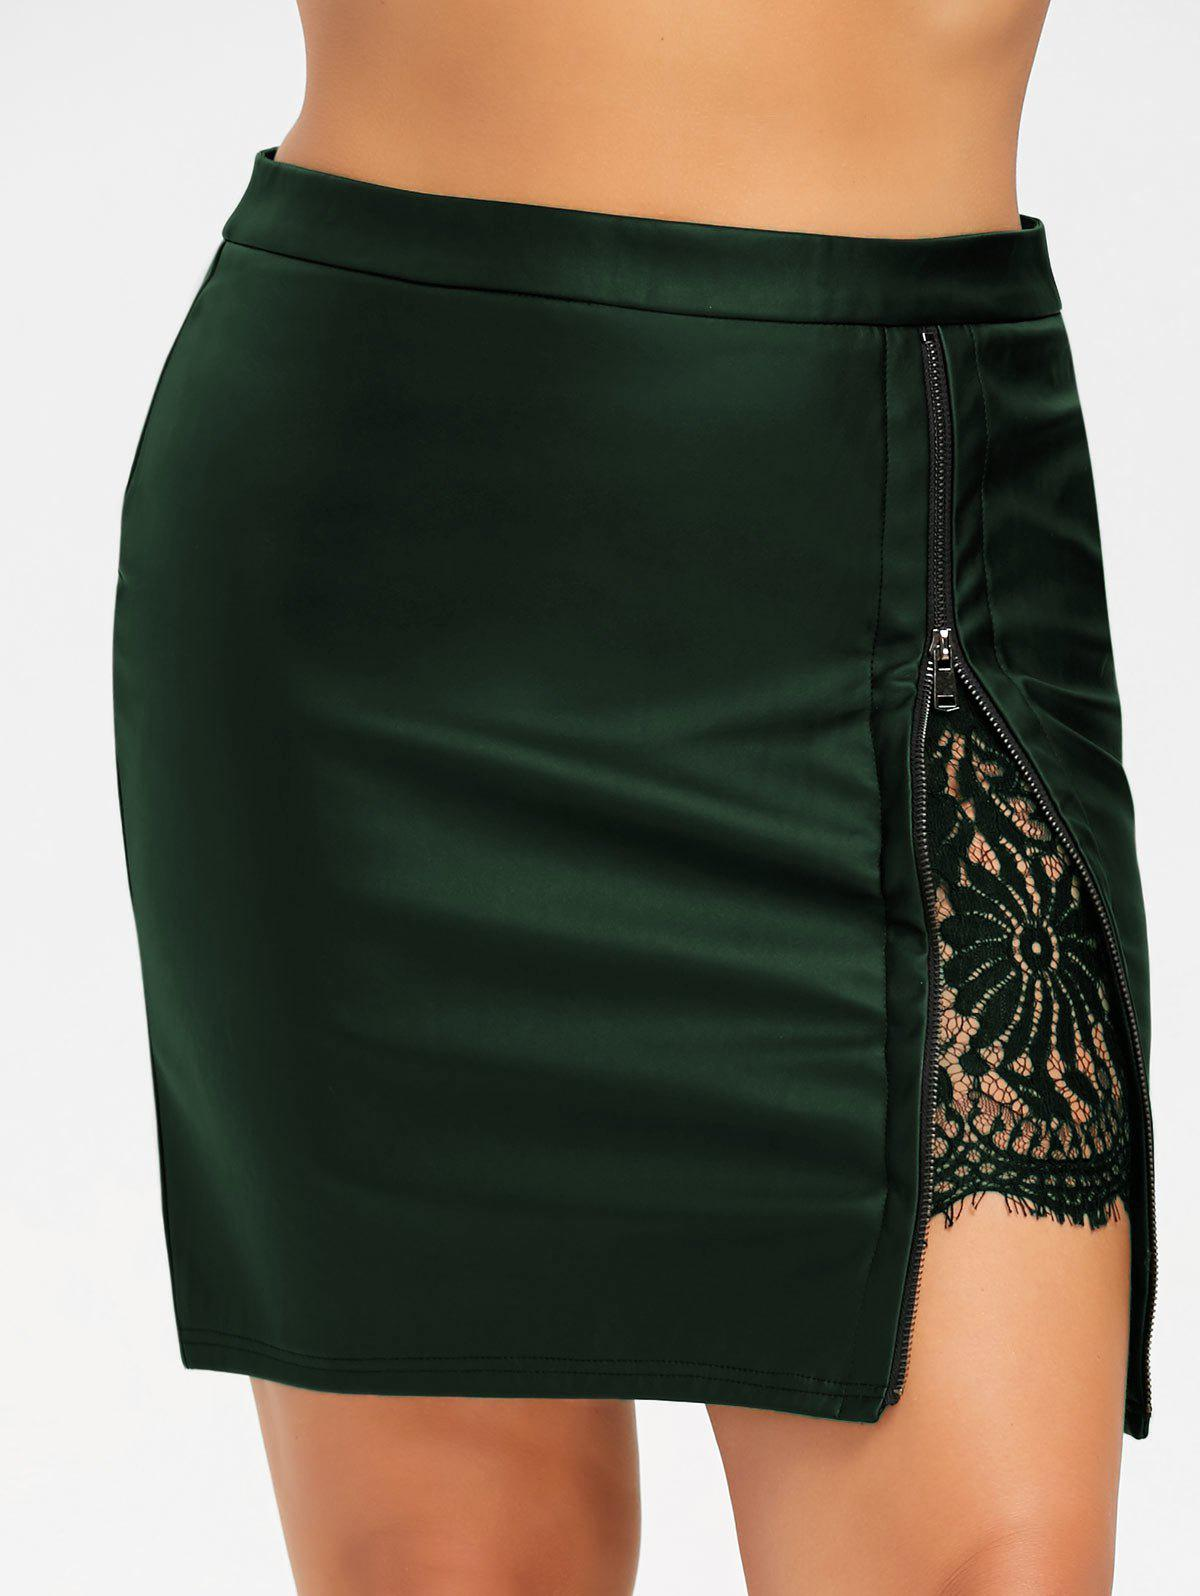 Plus Size Lace Panel PU Leather SkirtWOMEN<br><br>Size: XL; Color: BLACKISH GREEN; Material: Faux Leather,Polyester; Length: Mini; Silhouette: Bodycon; Pattern Type: Floral; Embellishment: Lace,Zippers; Season: Fall,Spring; Weight: 0.4000kg; Package Contents: 1 x Skirt;